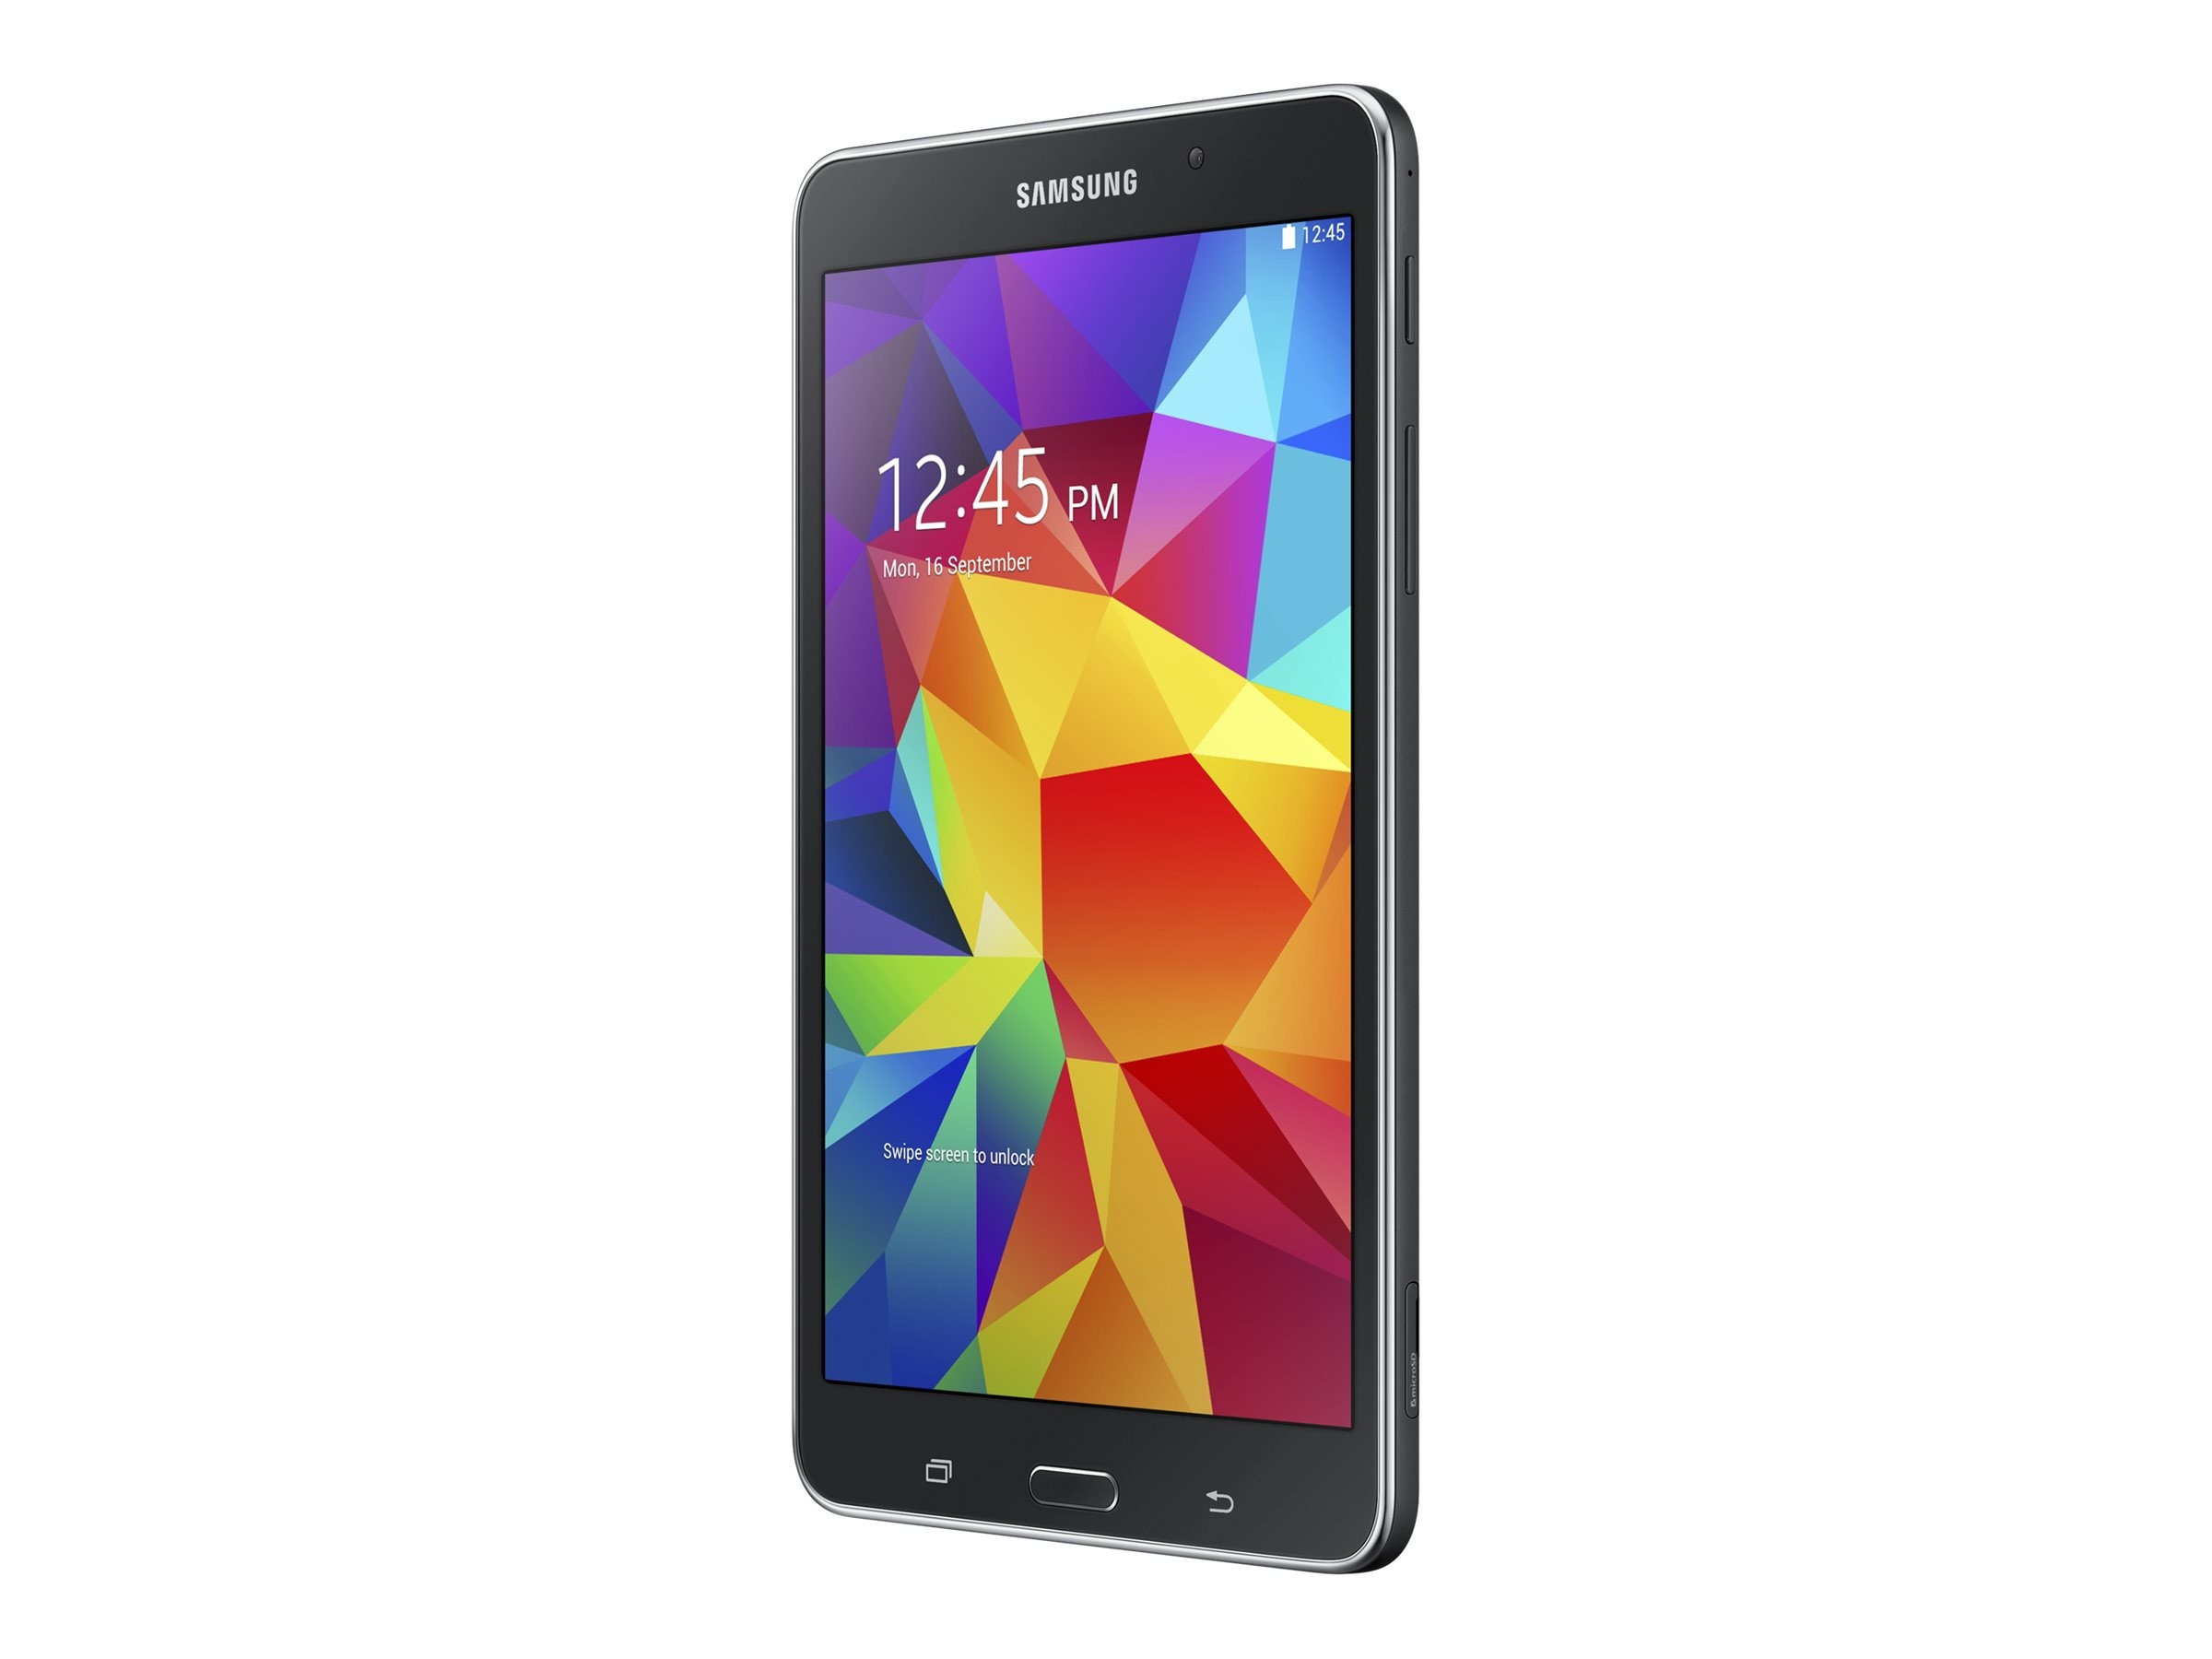 Samsung Galaxy Tab 4 1.2GHz processor Android 4.4 (KitKat), SM-T230NYKAXAR